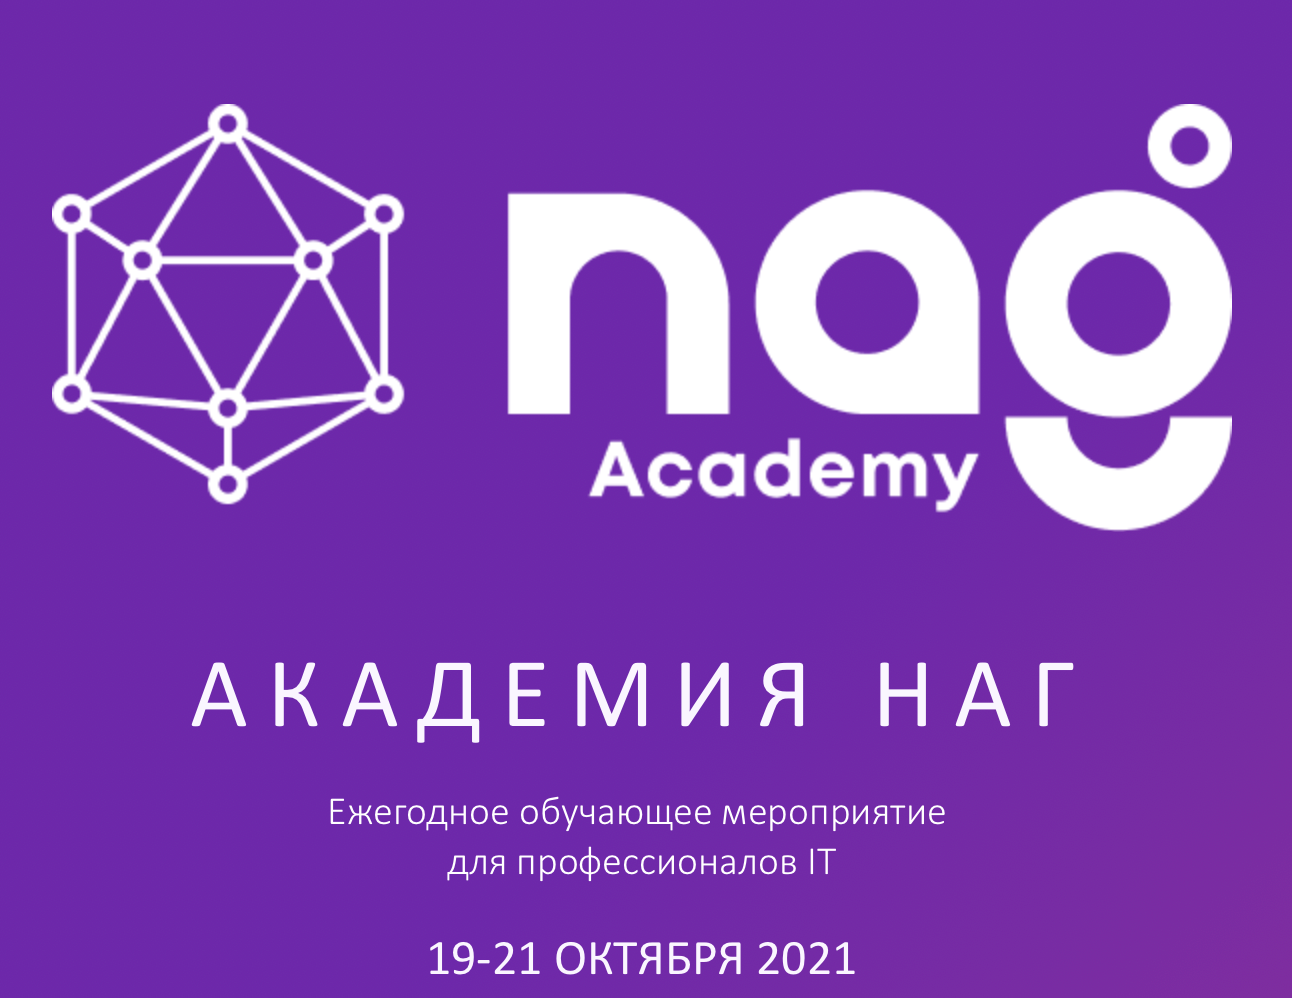 PlumSpace will attend a training event for IT professionals Academy-NAG